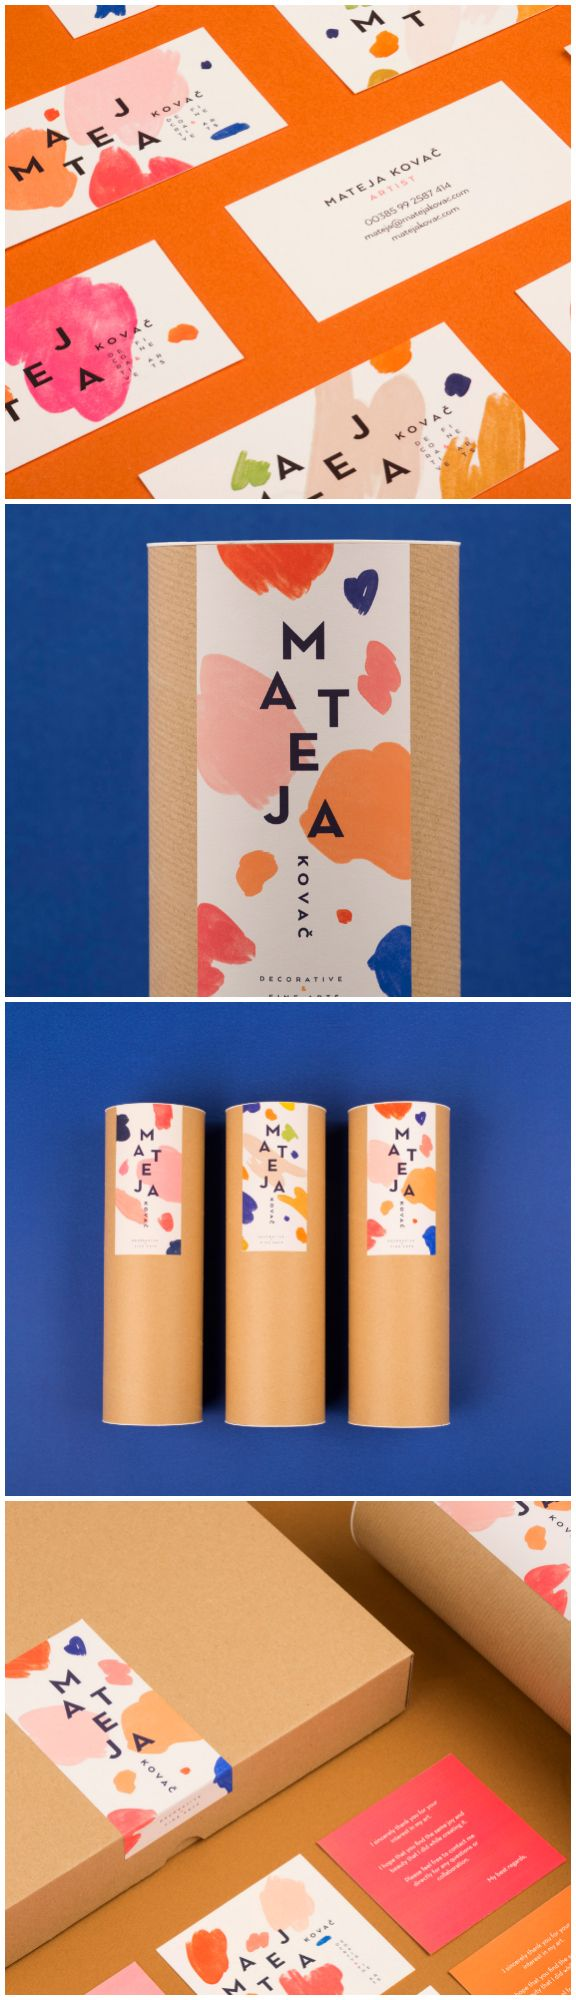 "Mireldy Design Studio - Mateja Kovač #Branding #packaging  ""We found inspiration for her new visual identity in her gestural strokes and the playful color palette."""